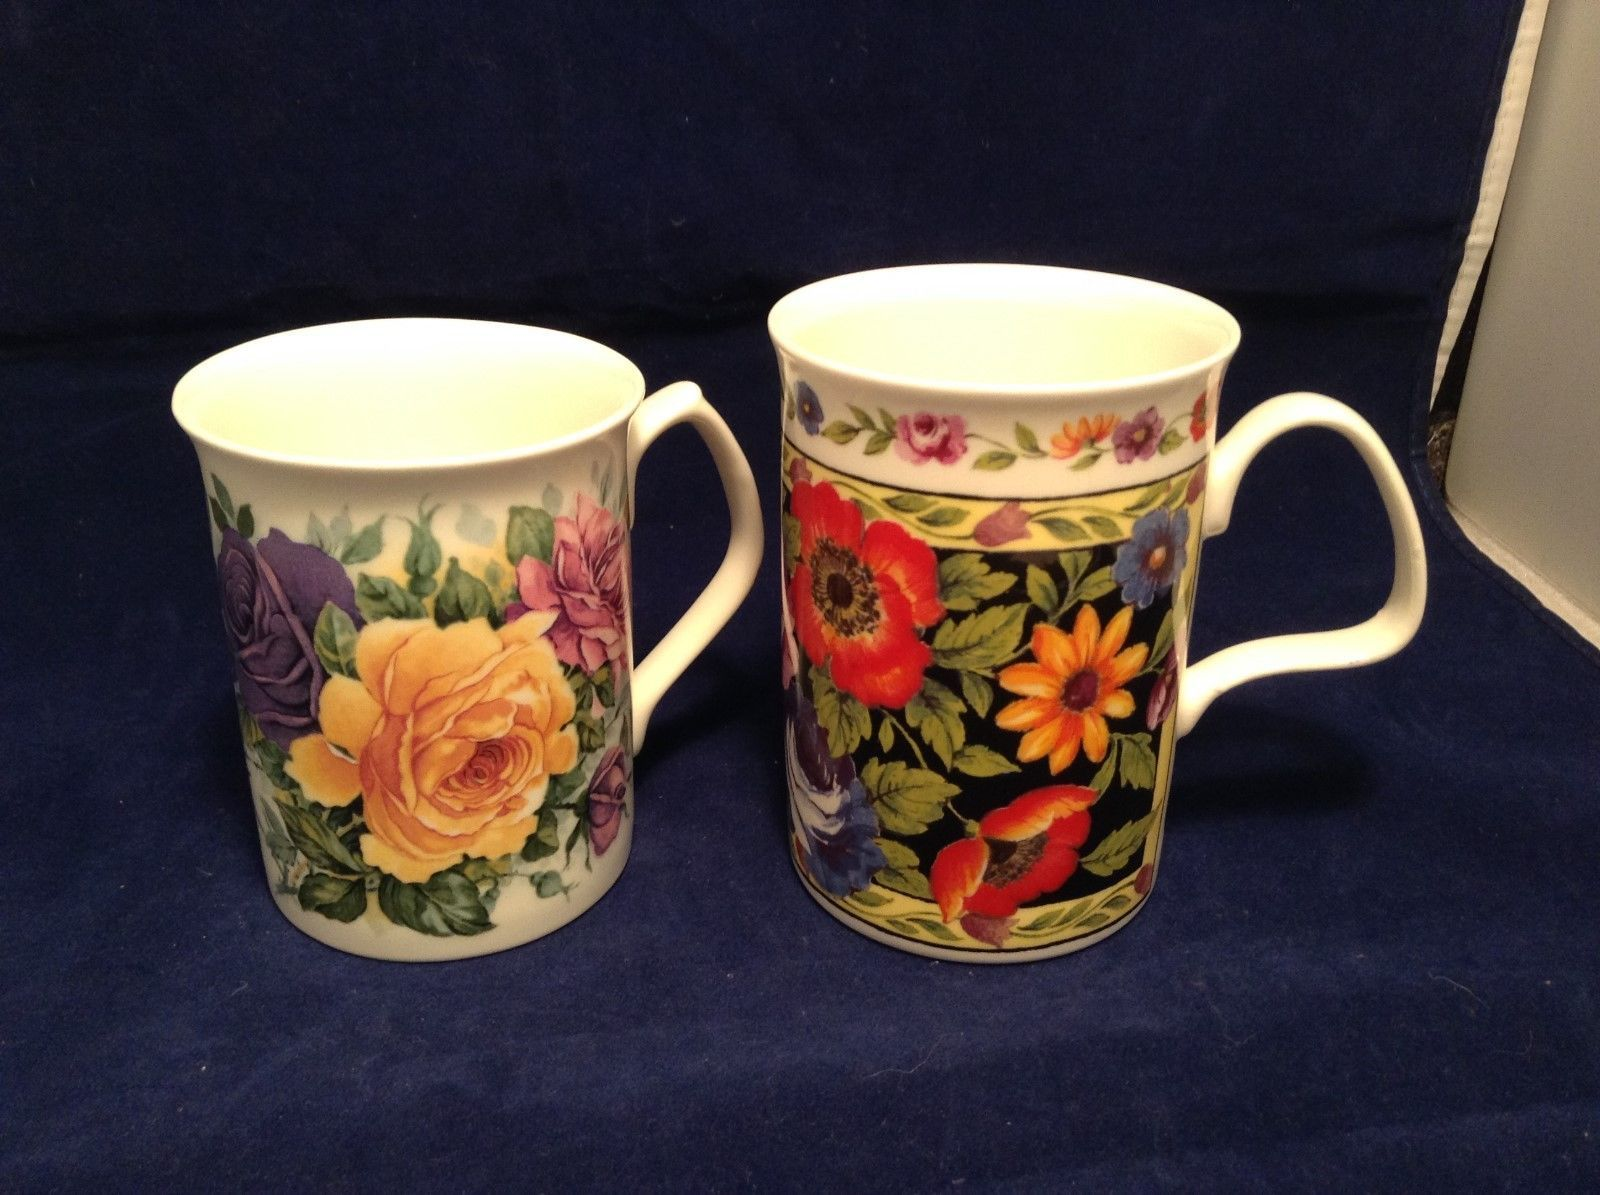 English Lascelles/Royal Garden Fine Bone China Set of Floral Mugs